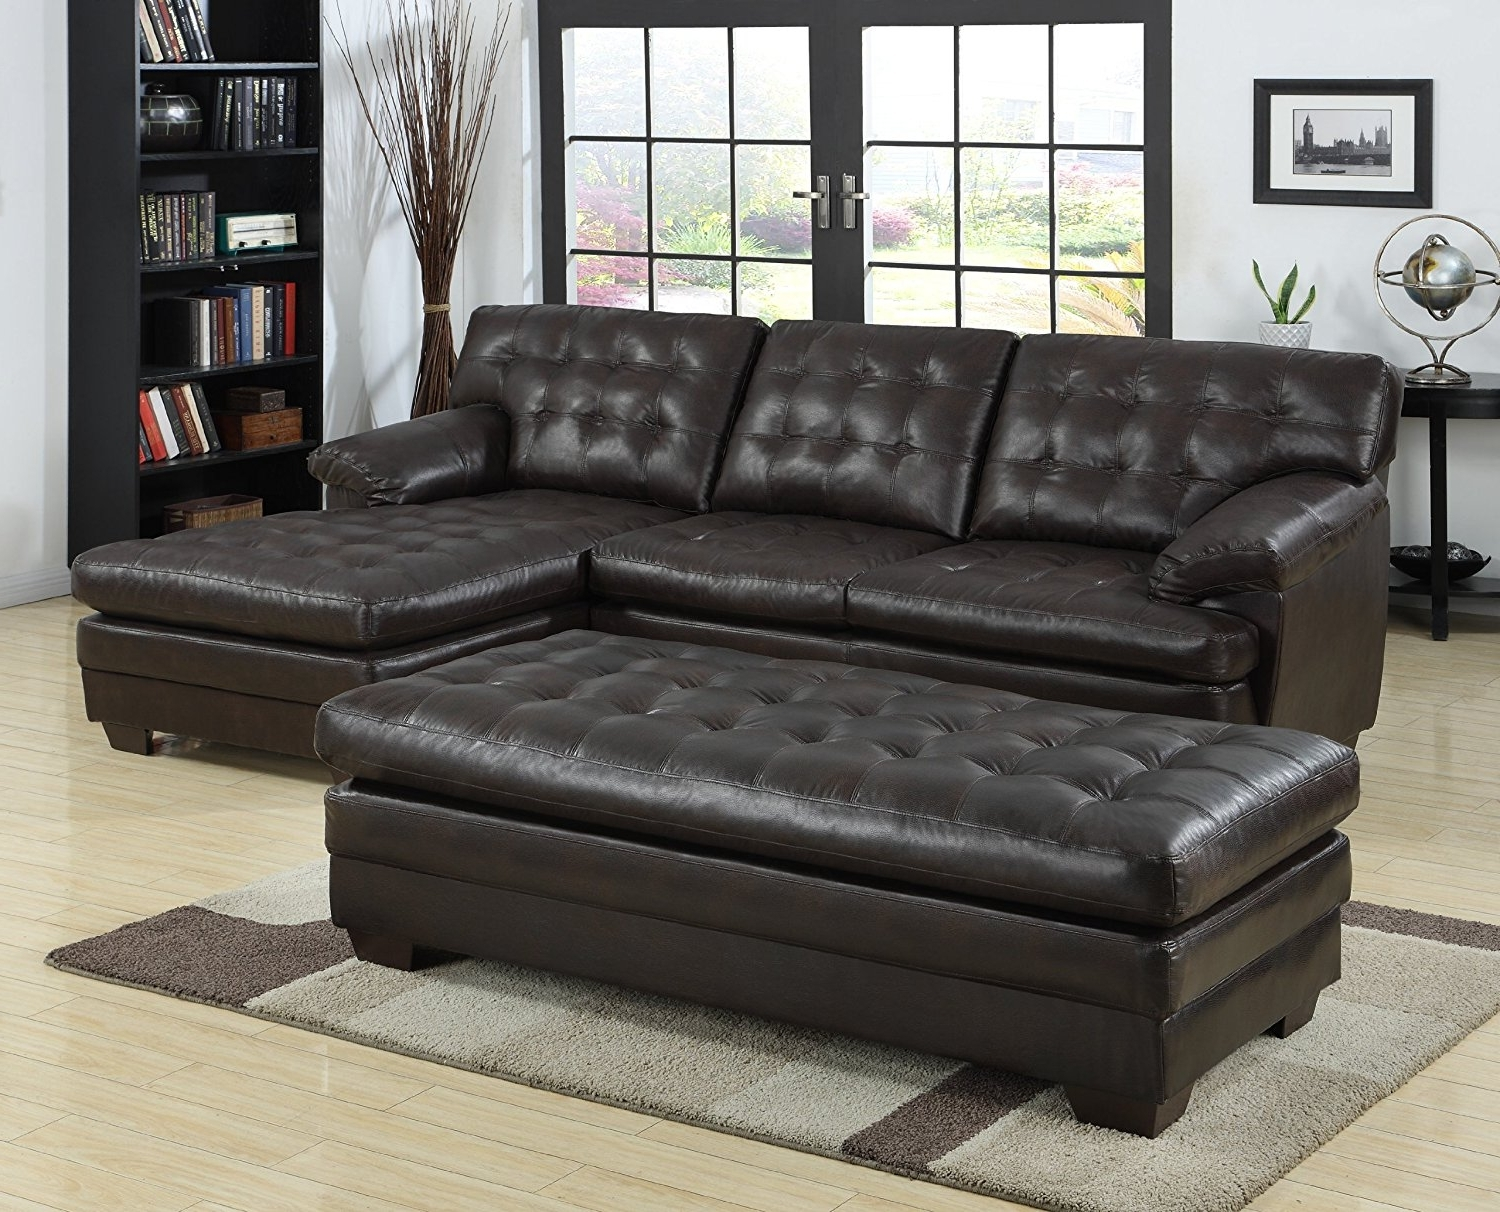 Best And Newest Amazon: Homelegance 9739 Channel Tufted 2 Piece Sectional Sofa Regarding Couches With Chaise Lounge (View 4 of 15)